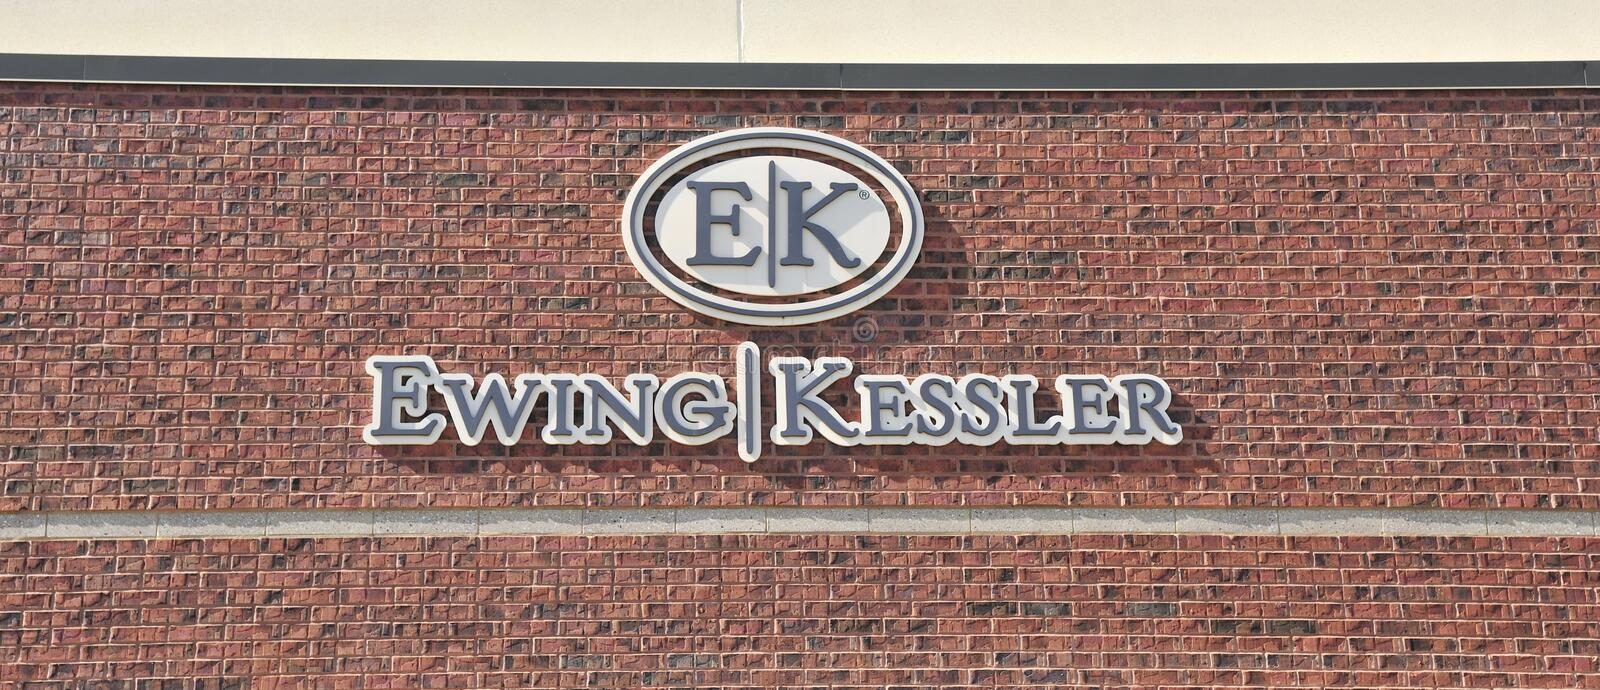 Ewing Kessler Corporation. Ewing Kessler founded in 2005 is a manufacturers' representative firm specializing in engineered solutions for sustainable design, as stock photos